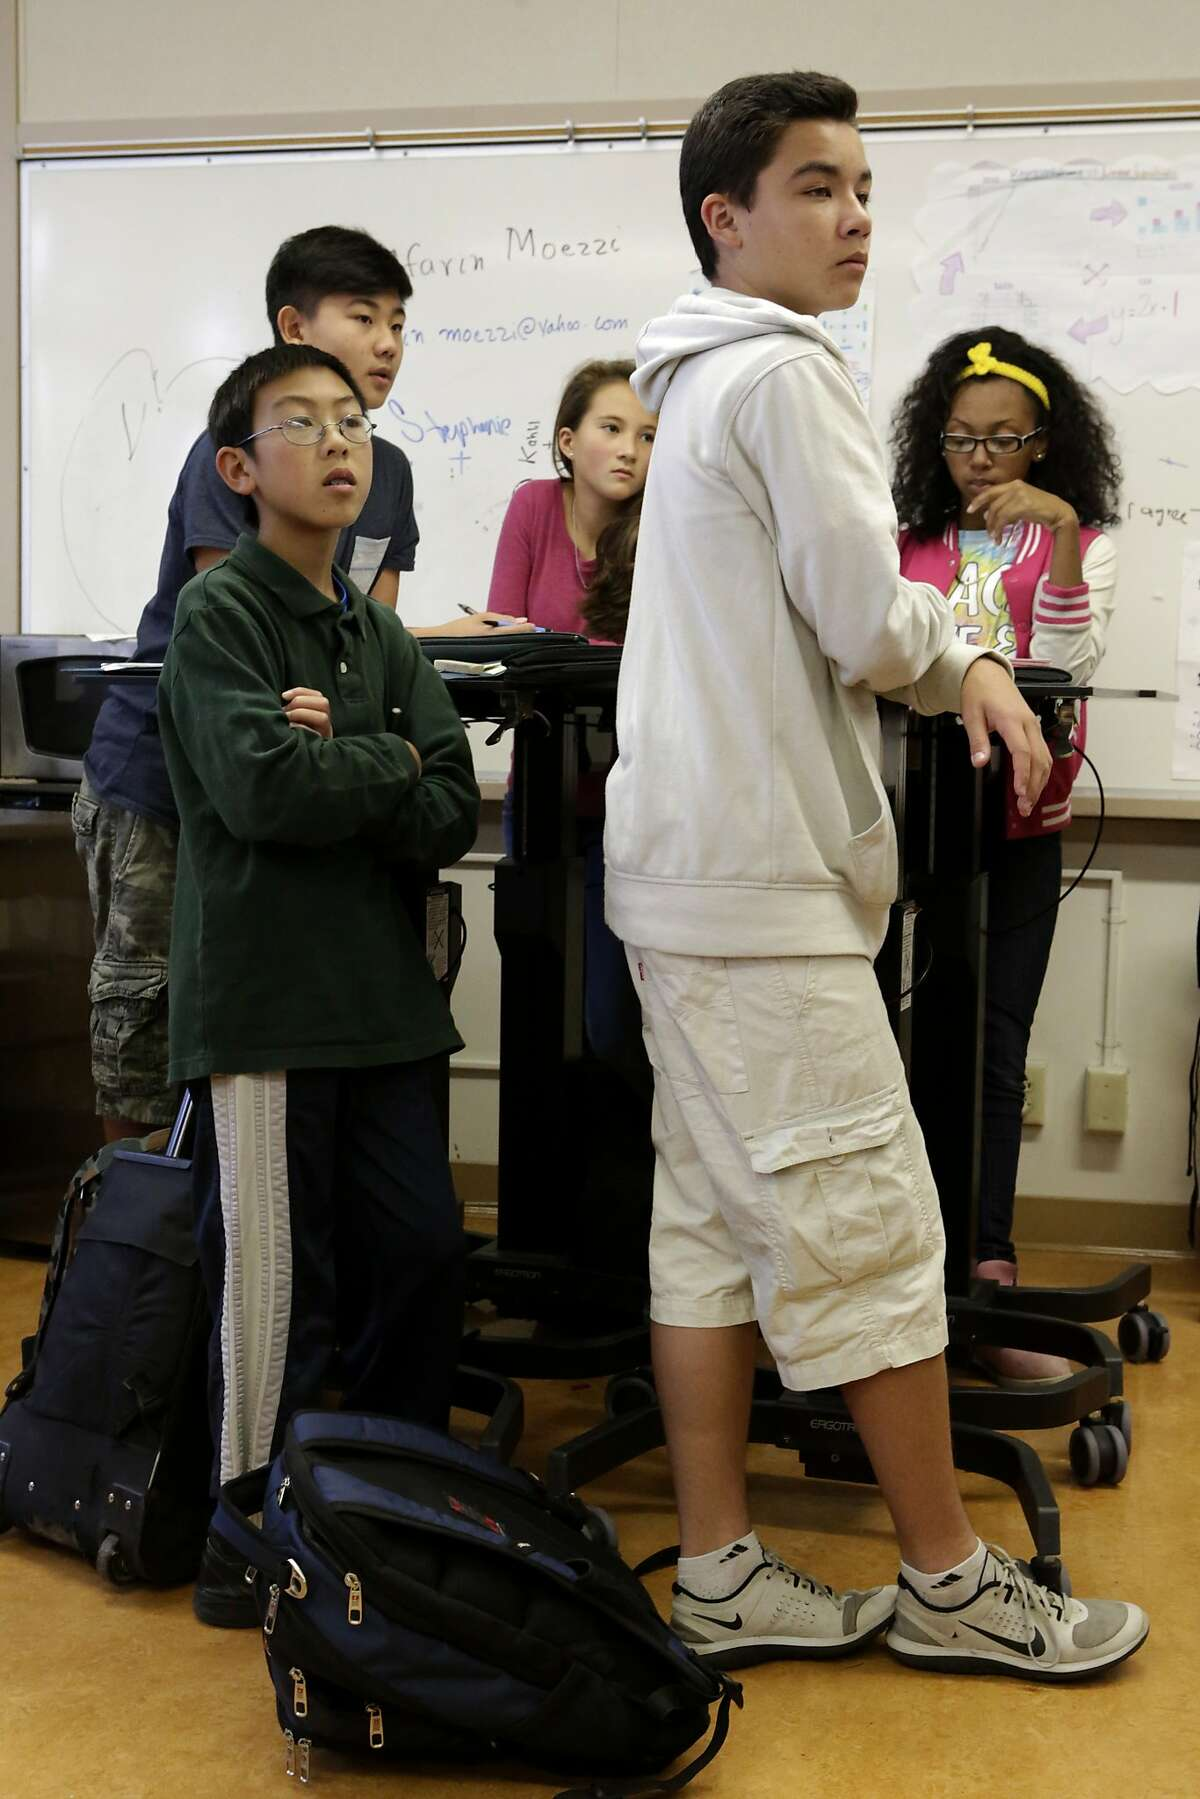 Eighth grade students stand at their desks during a math class at Montera Middle School in Oakland on Friday, November 14, 2014.